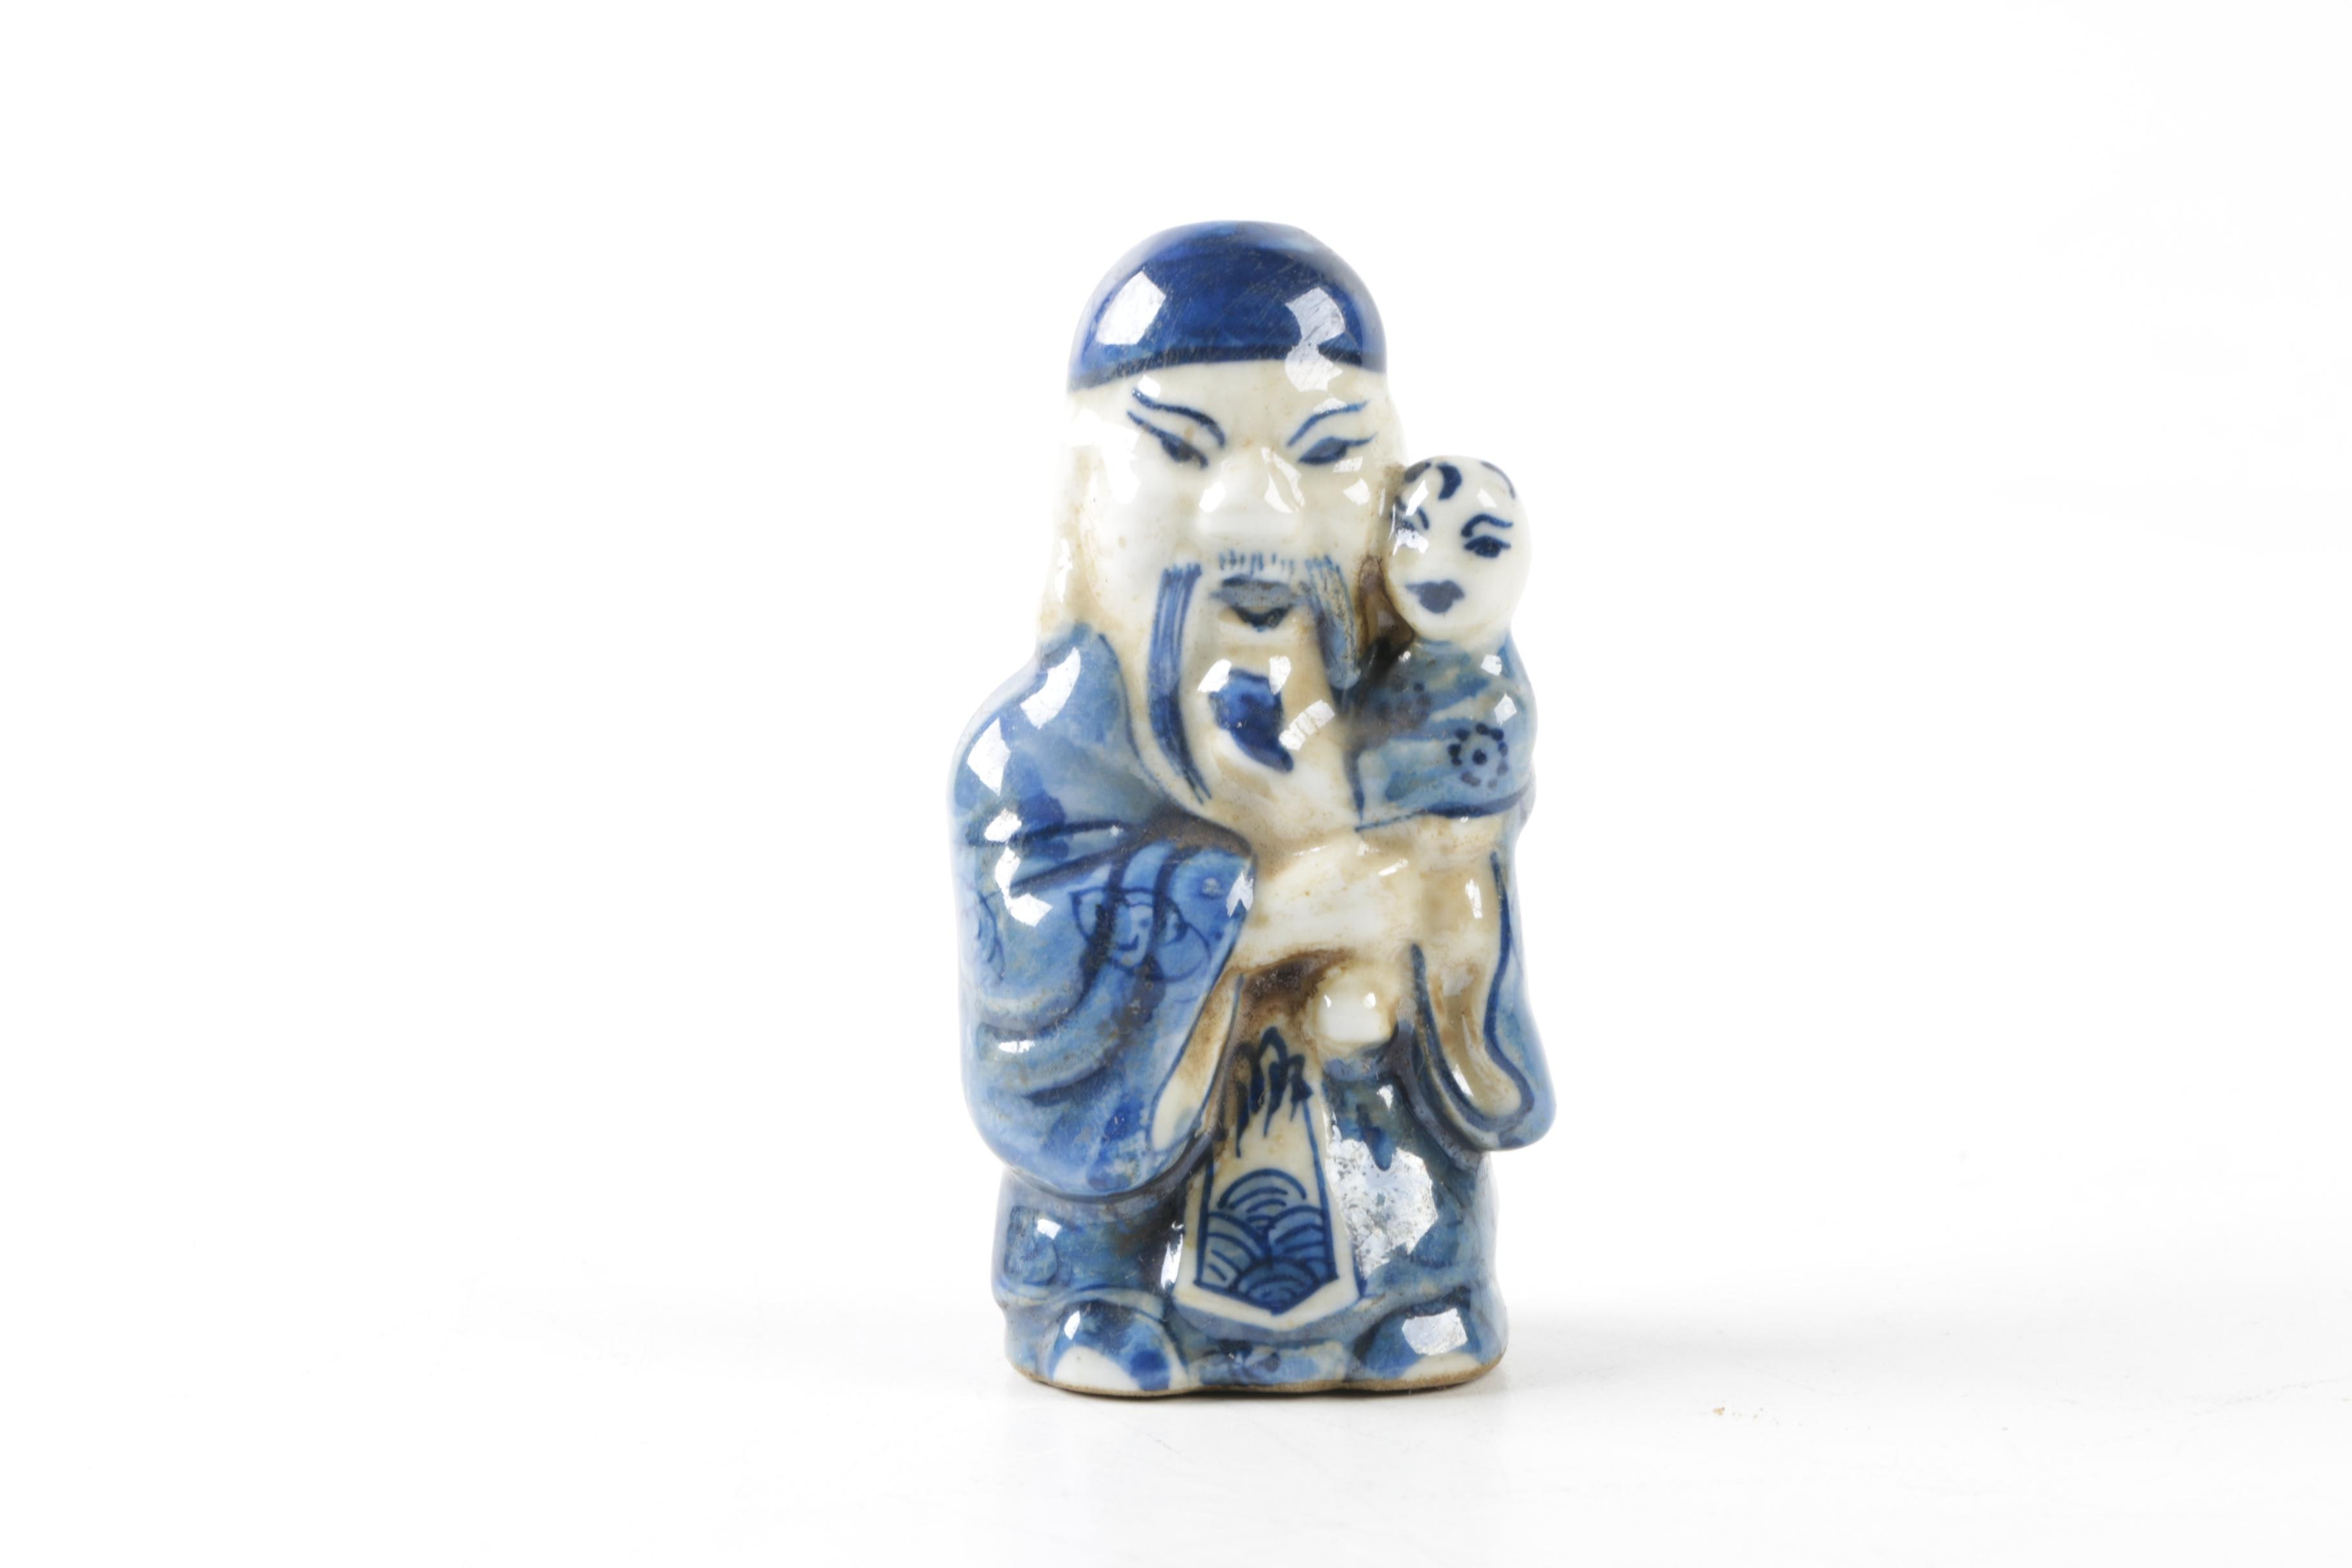 Blue And White Chinese Figurative Snuff Bottles Ebth